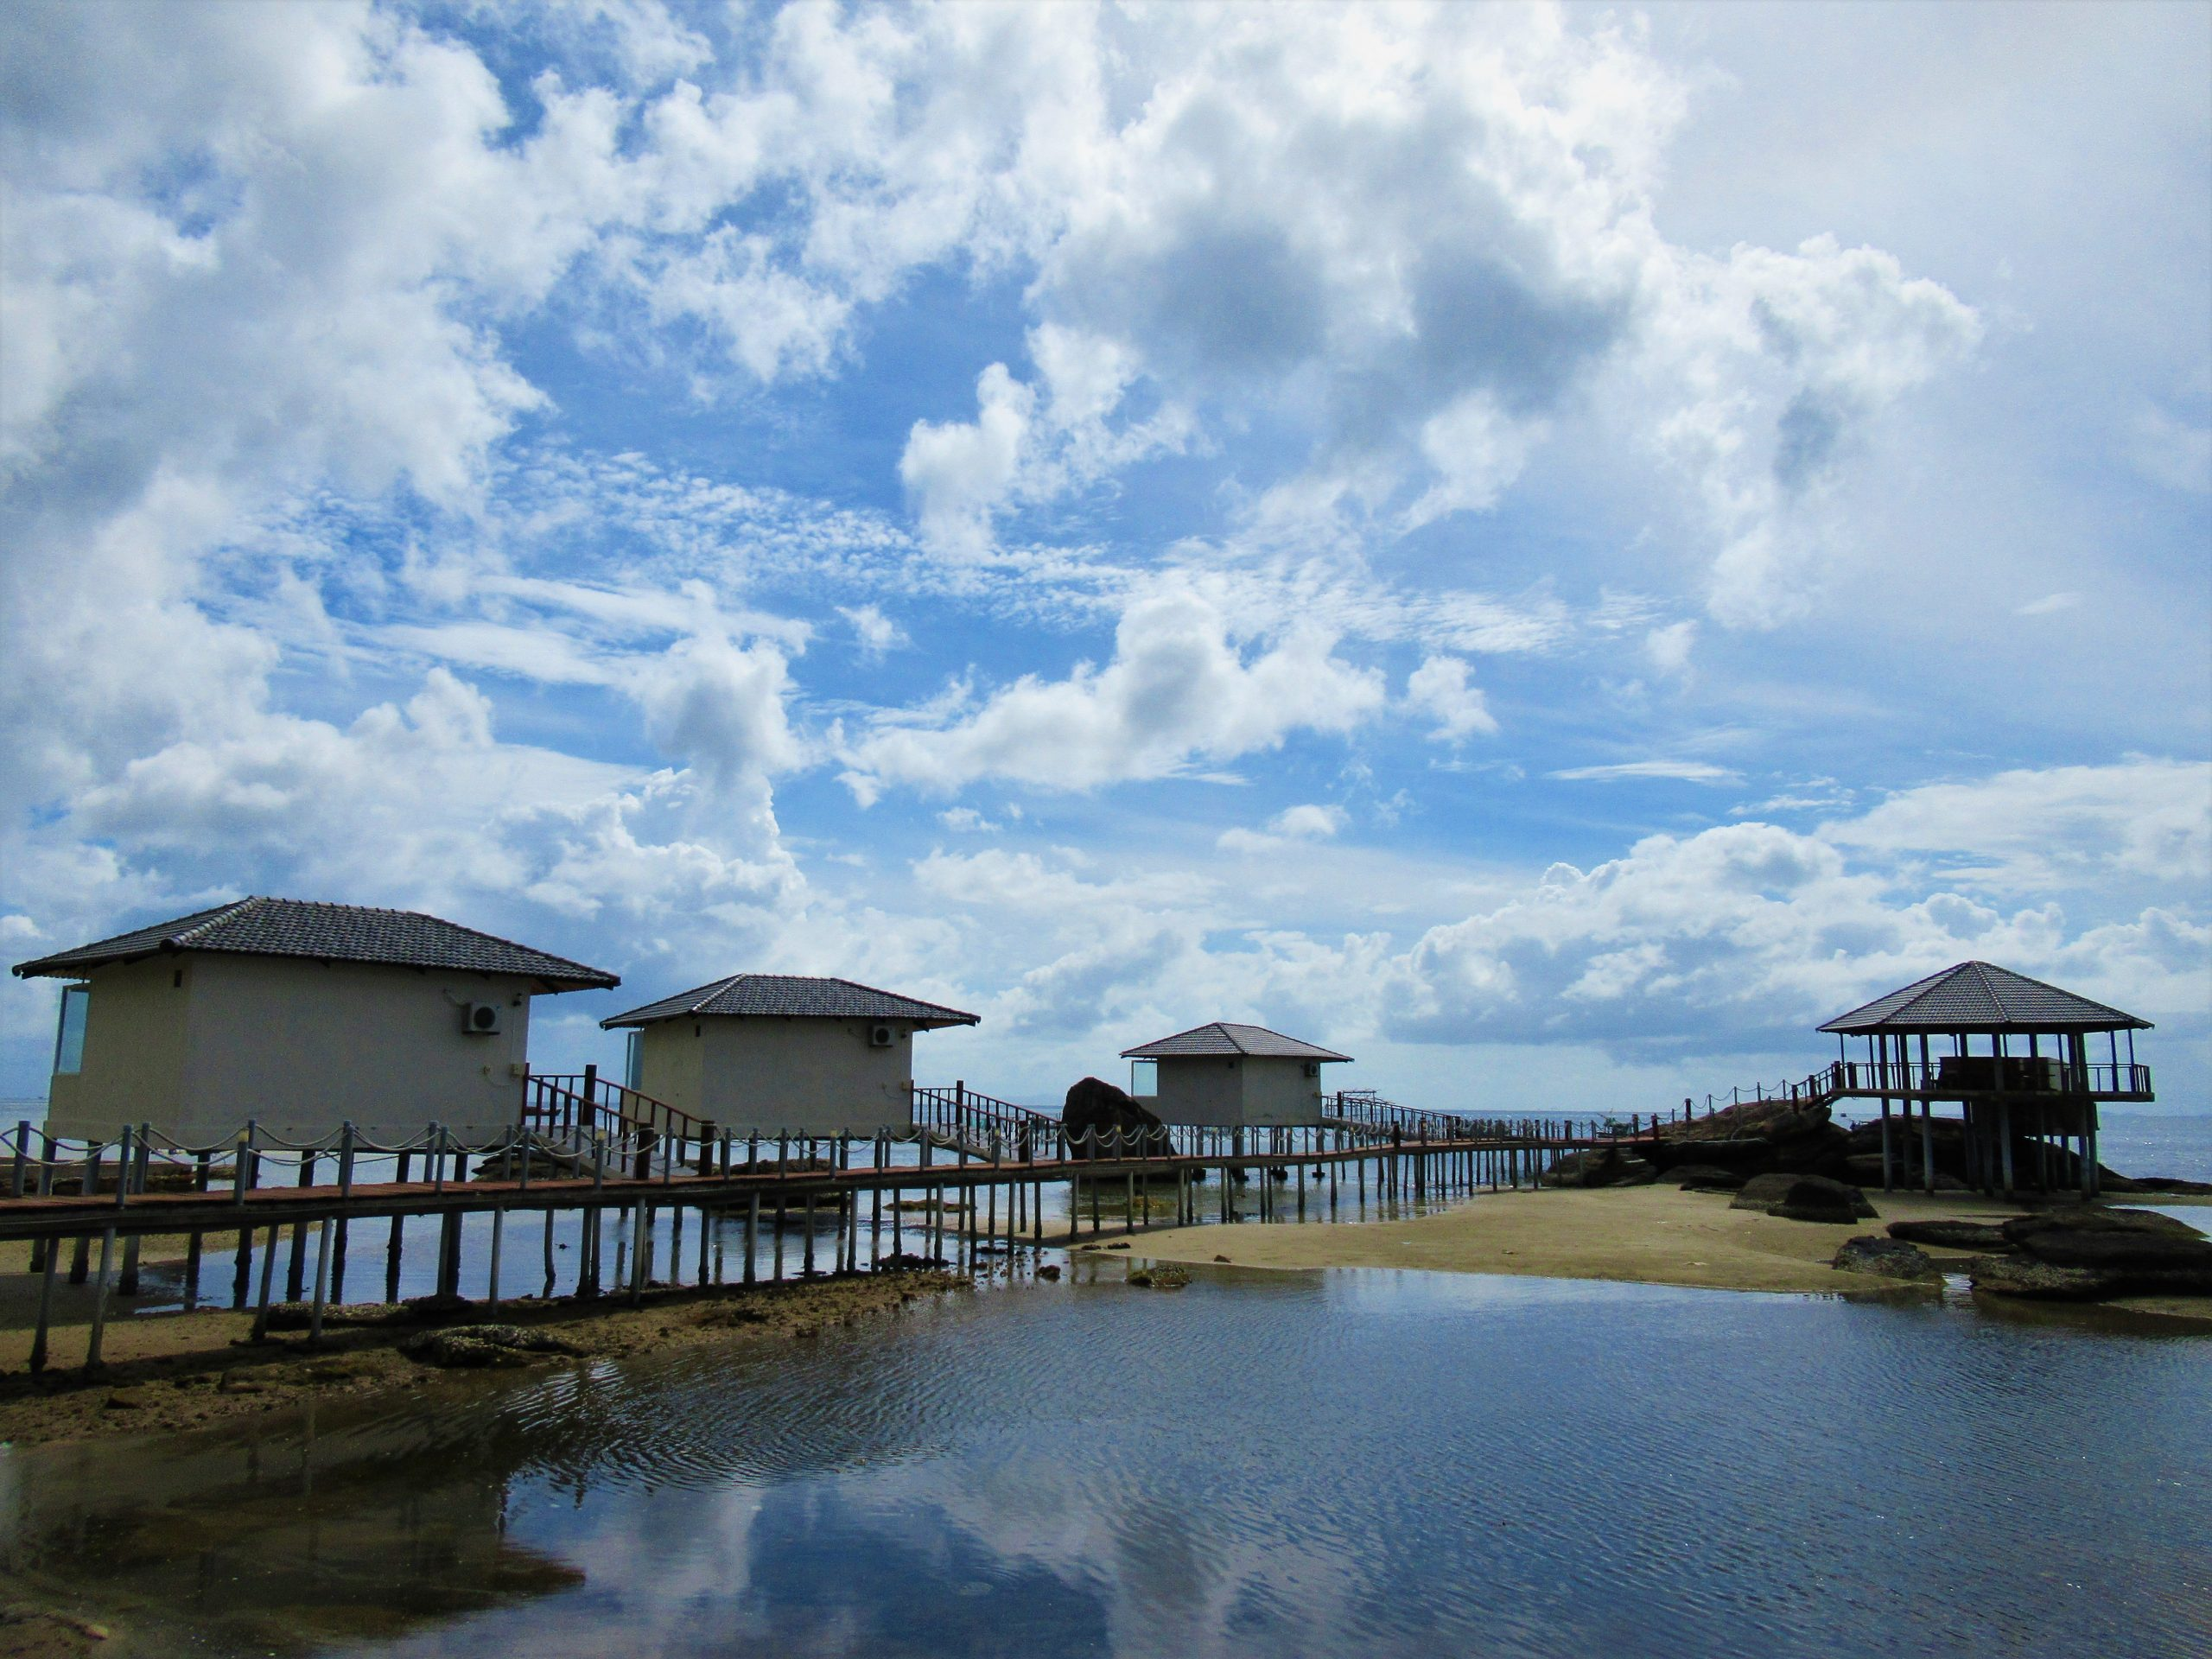 On Sea Bungalows at The Pier